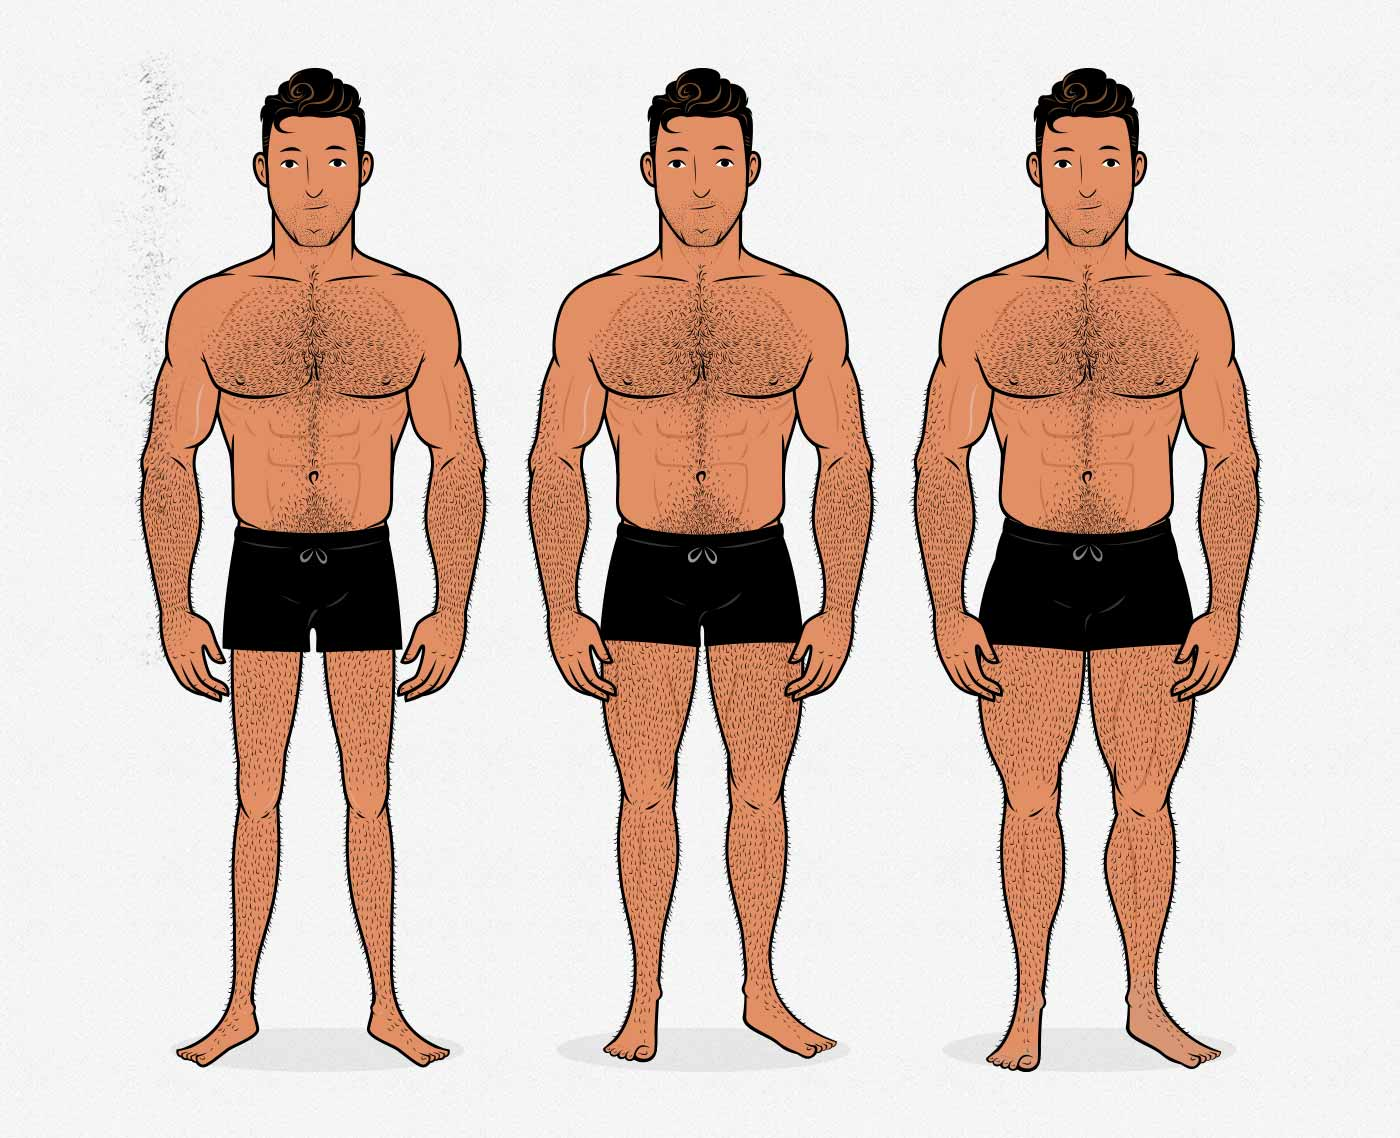 Illustration of men with different leg sizes and degrees of muscularity.